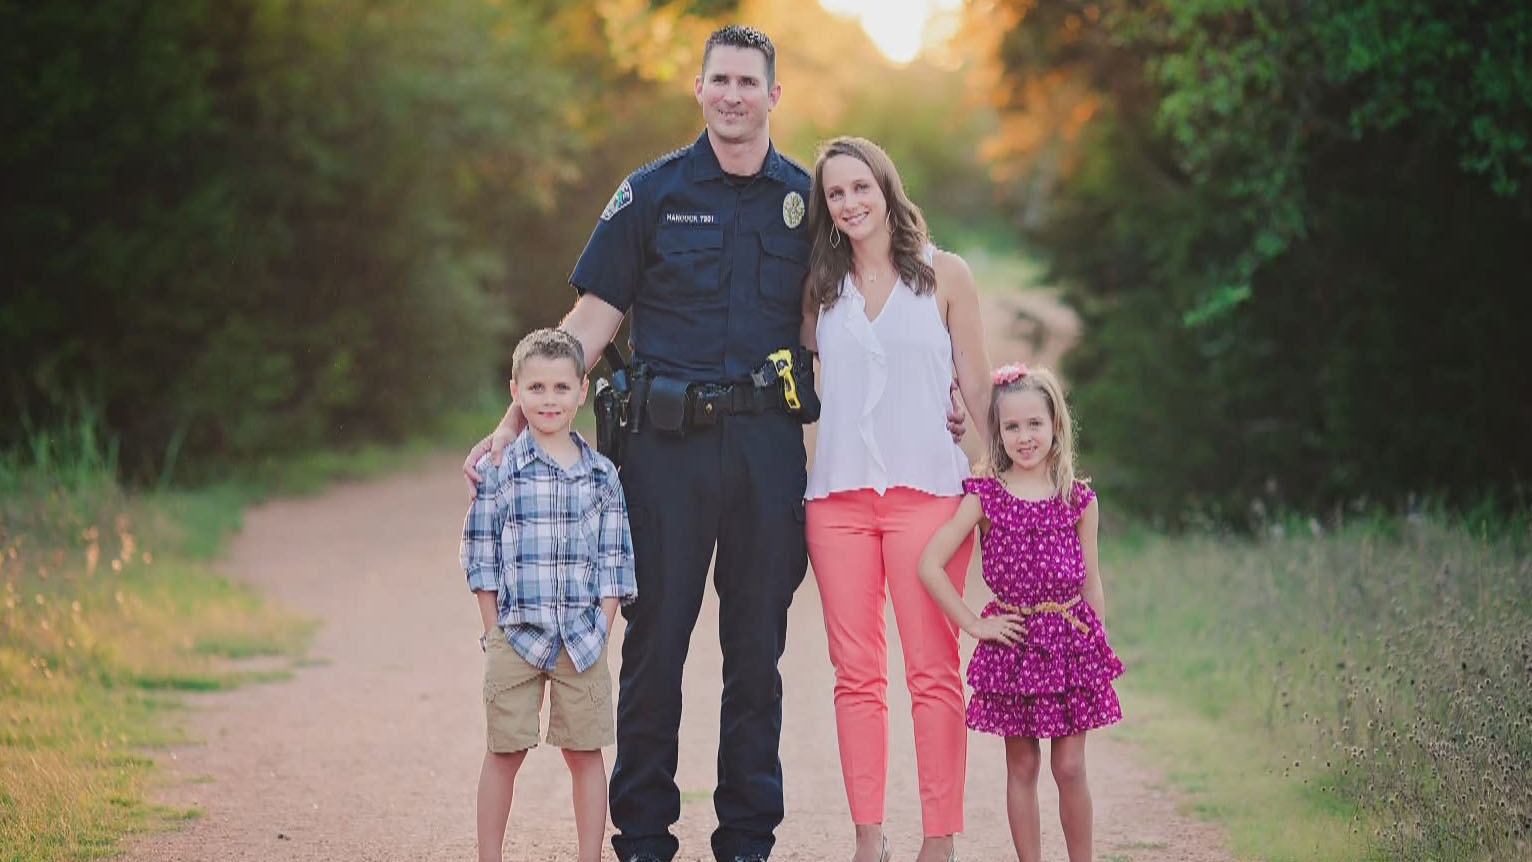 apd officer hancock and his family 11620